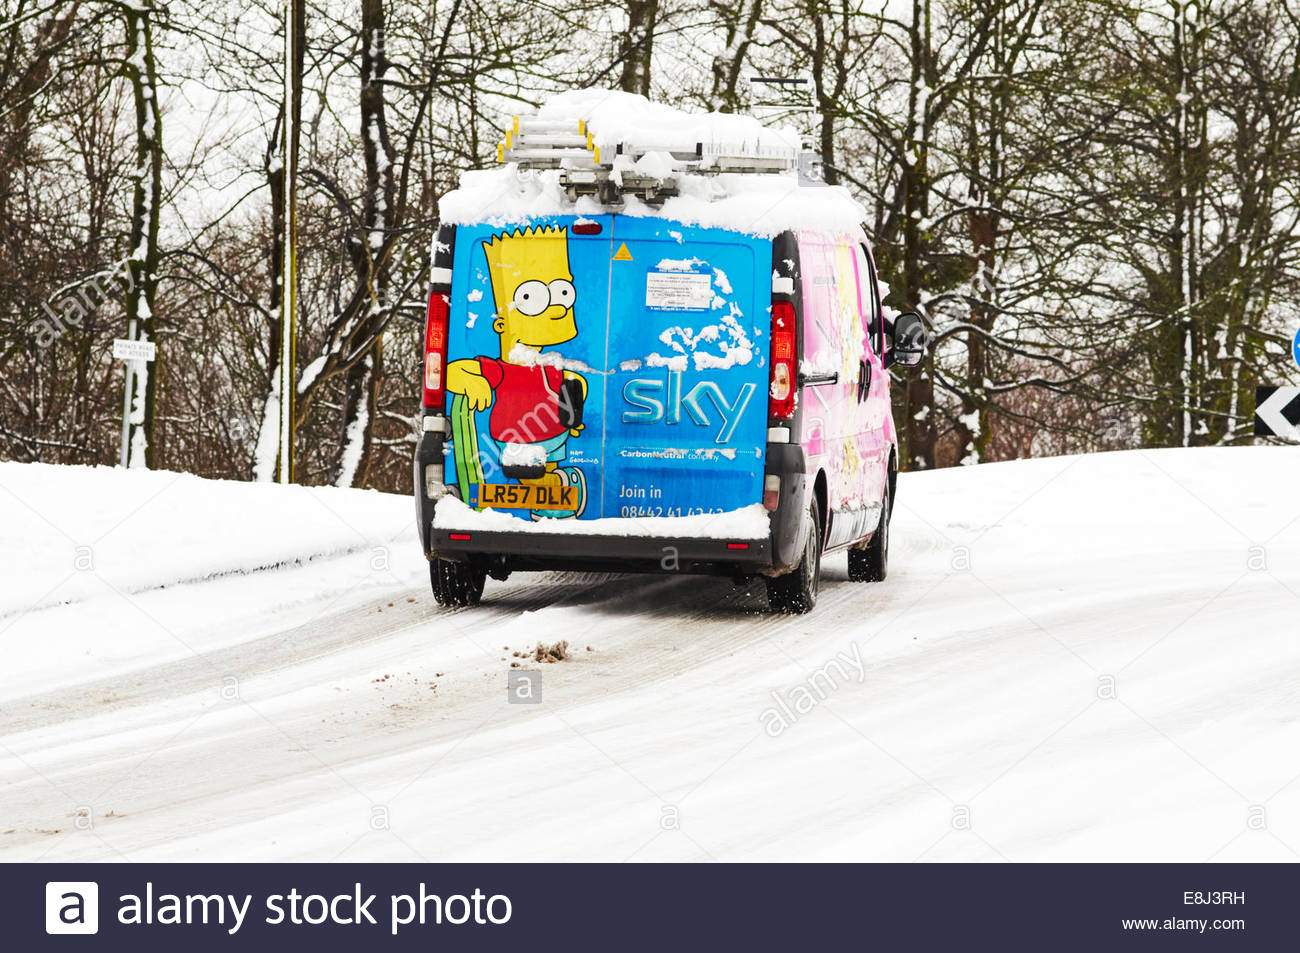 Sky television media van with bart simpson painted on the back door approaching a roundabout in the snow - Stock Image